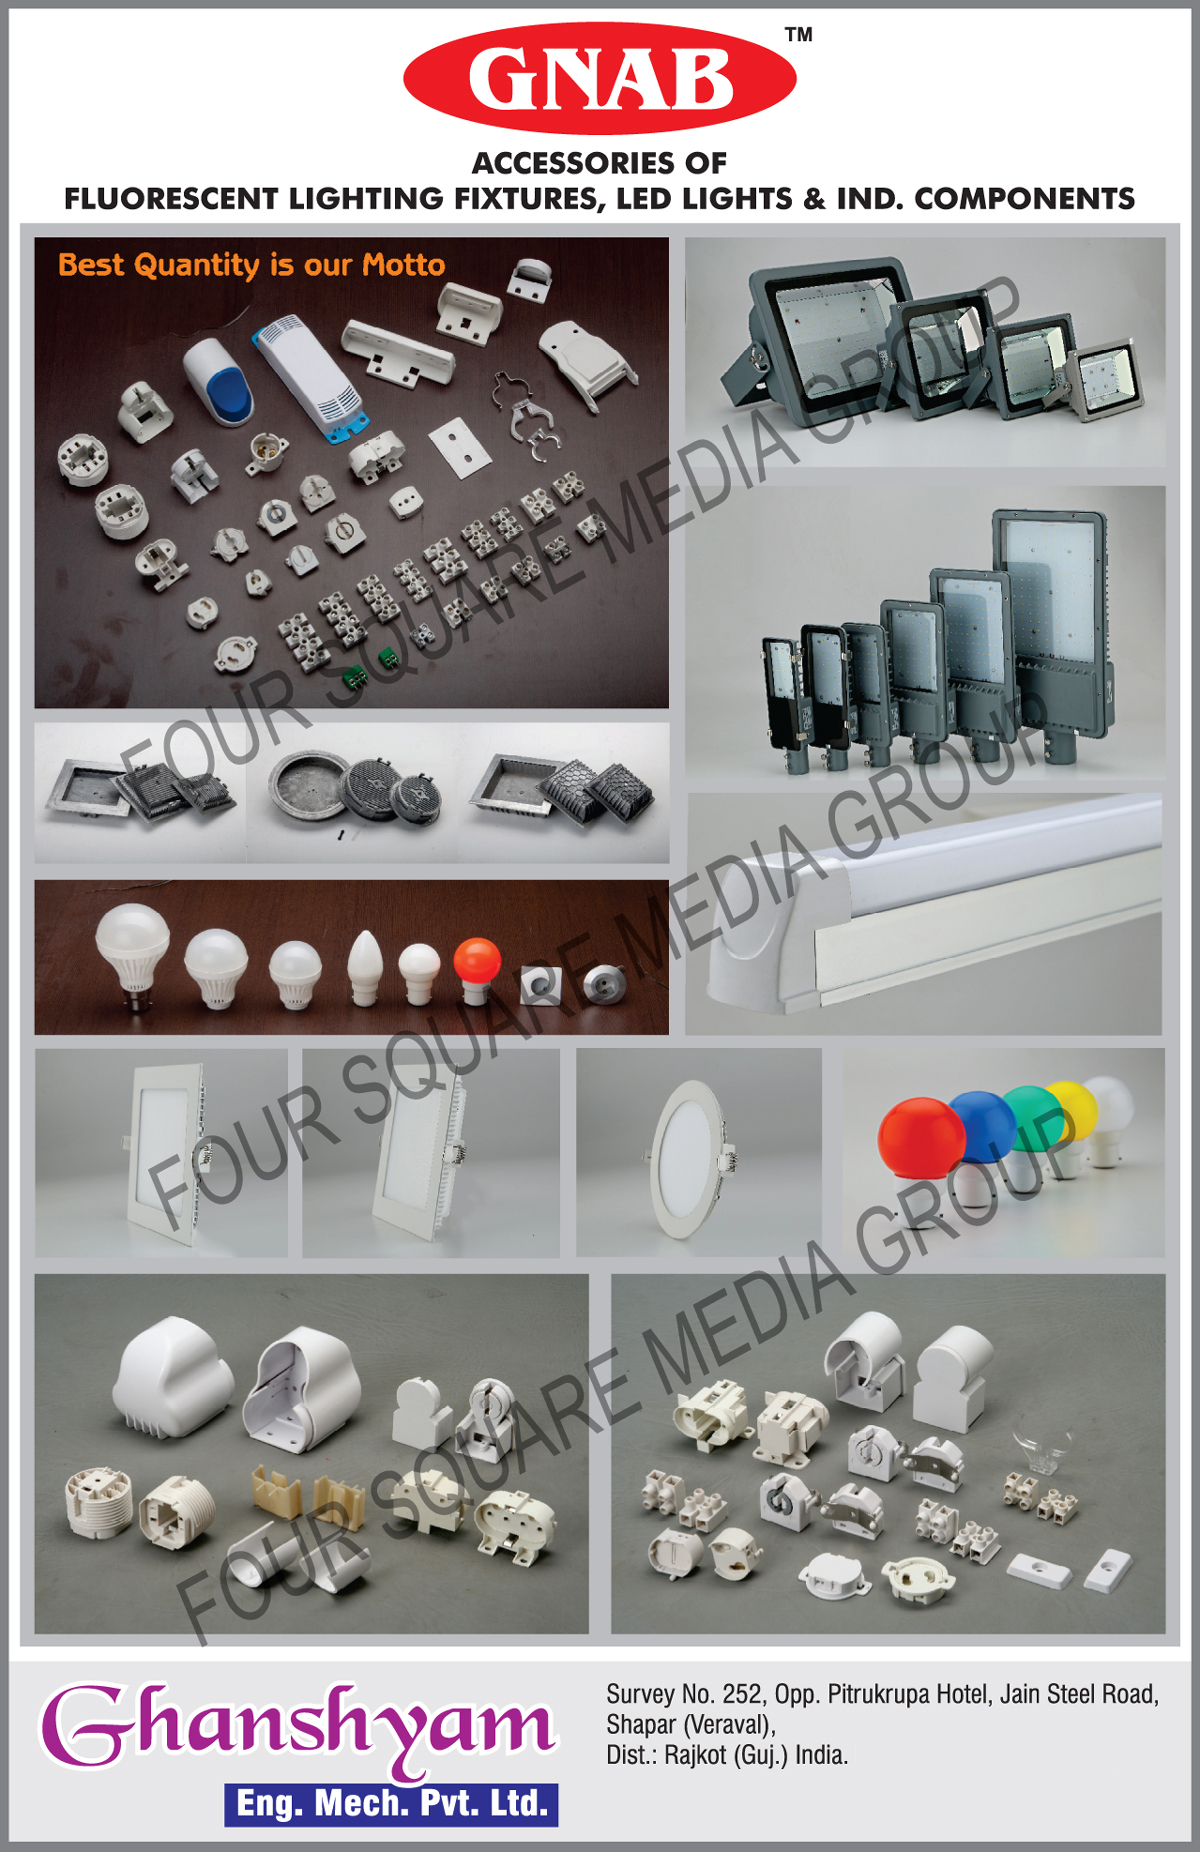 Fluorescent Lighting Fixtures, Led Lights, Industrial Components